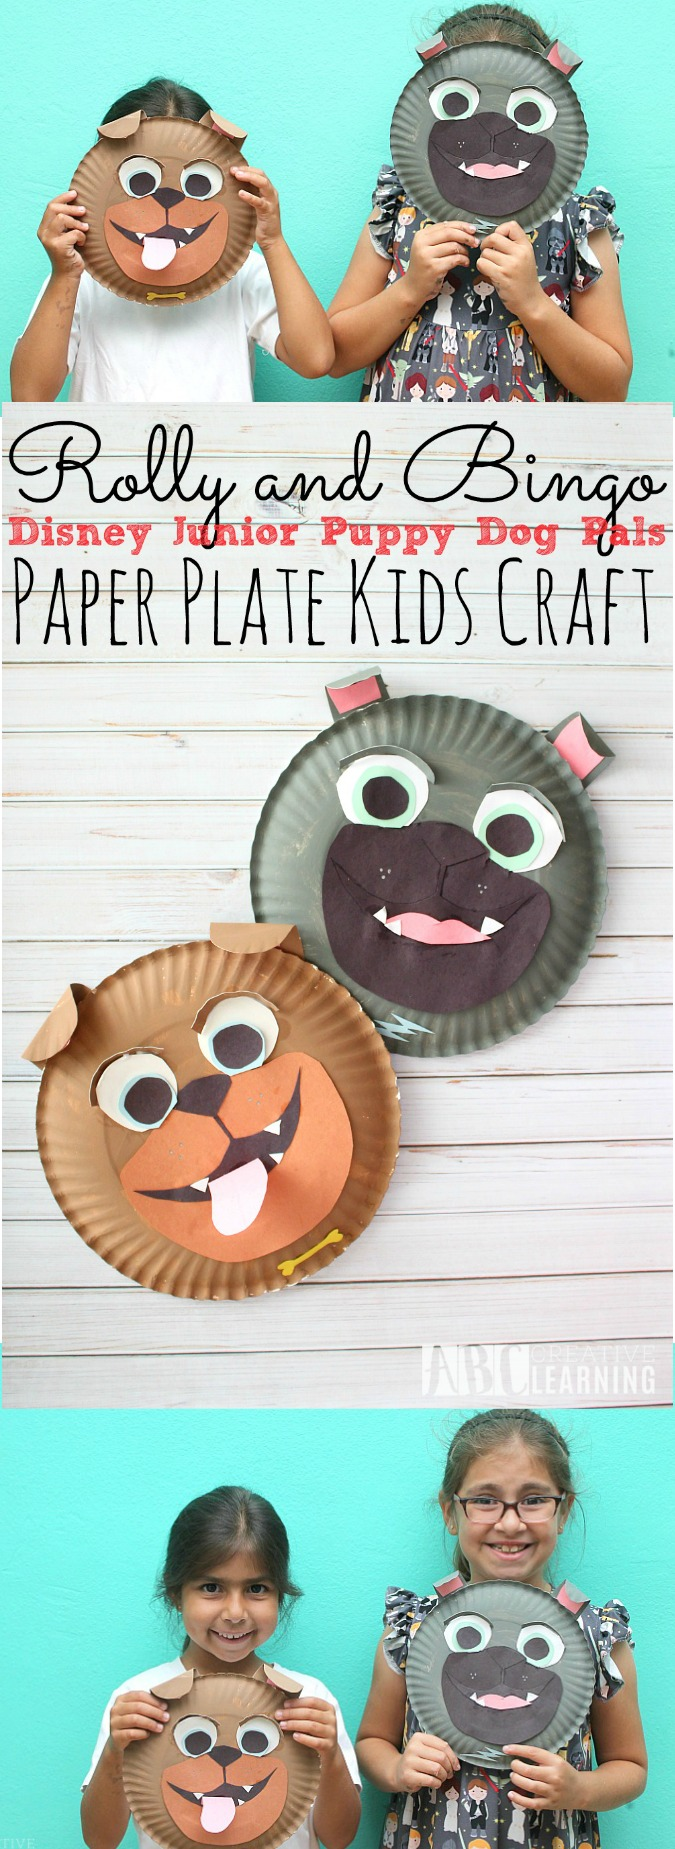 Rolly and Bingo Paper Plate Craft